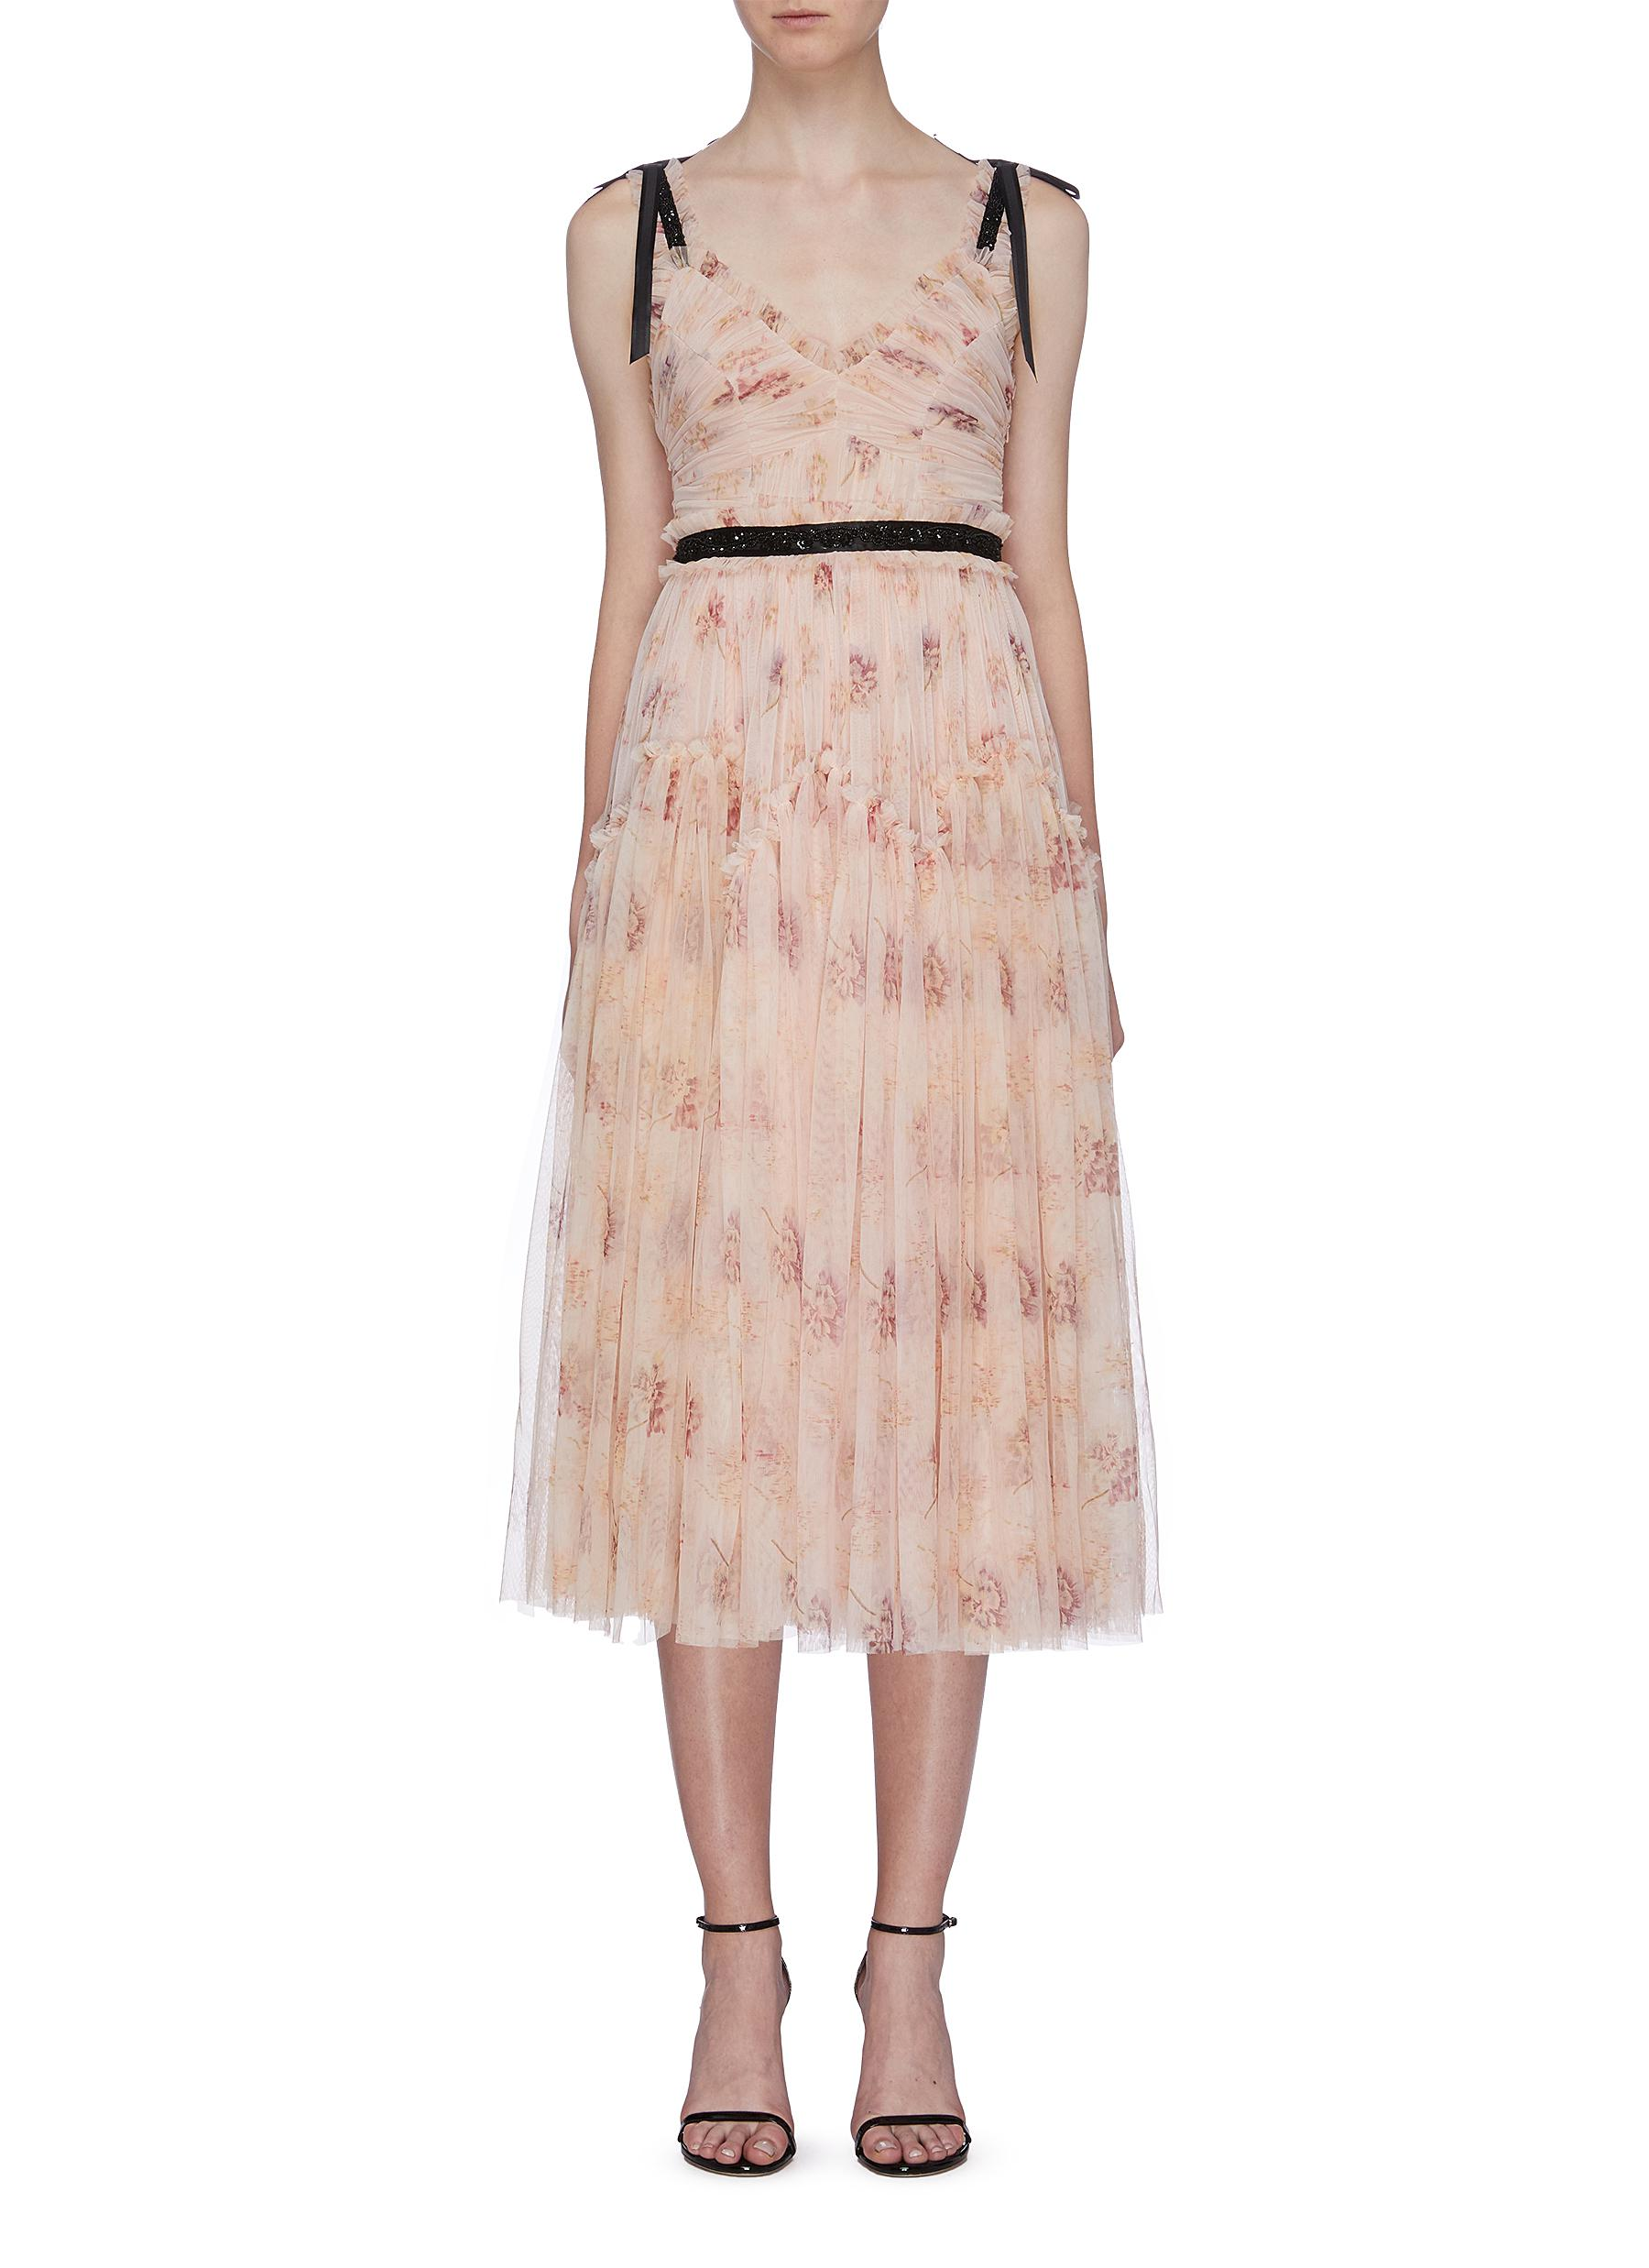 Think Of Me Arabesque pleated floral print tulle dress by Needle & Thread